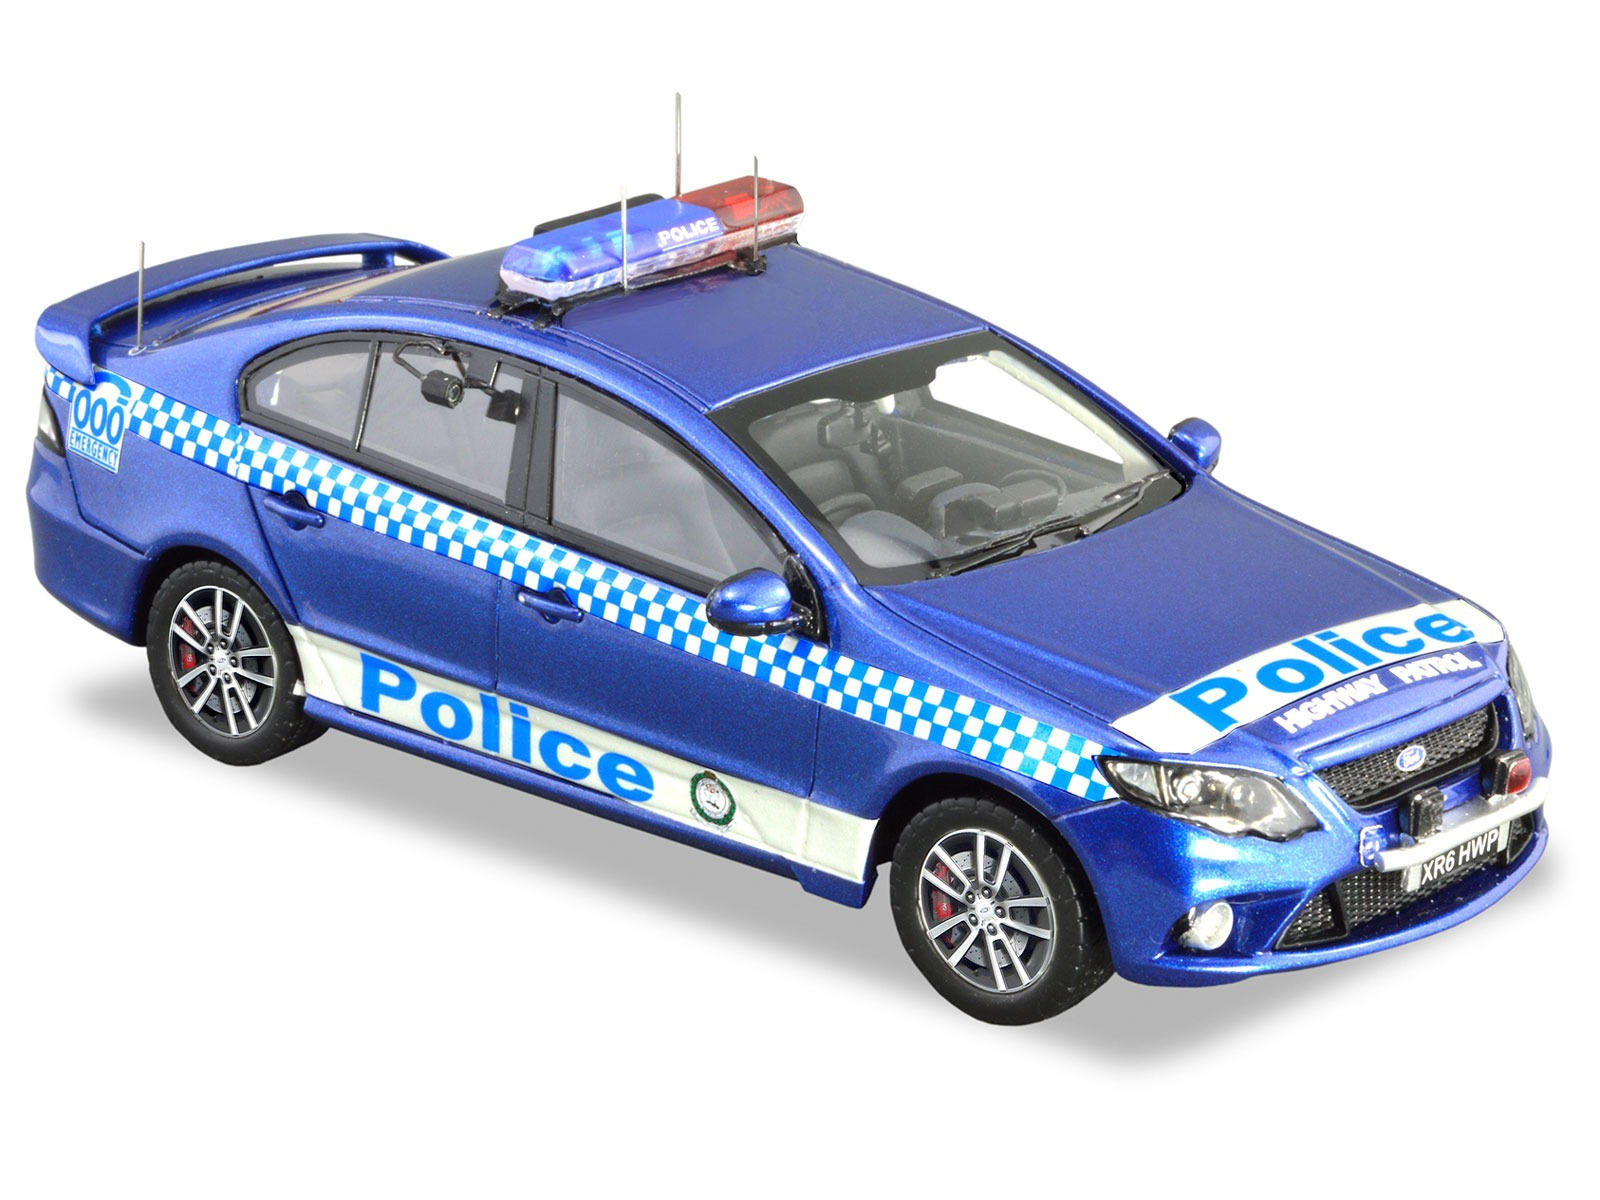 Ford FG XR6 Highway Patrol – Kinetic